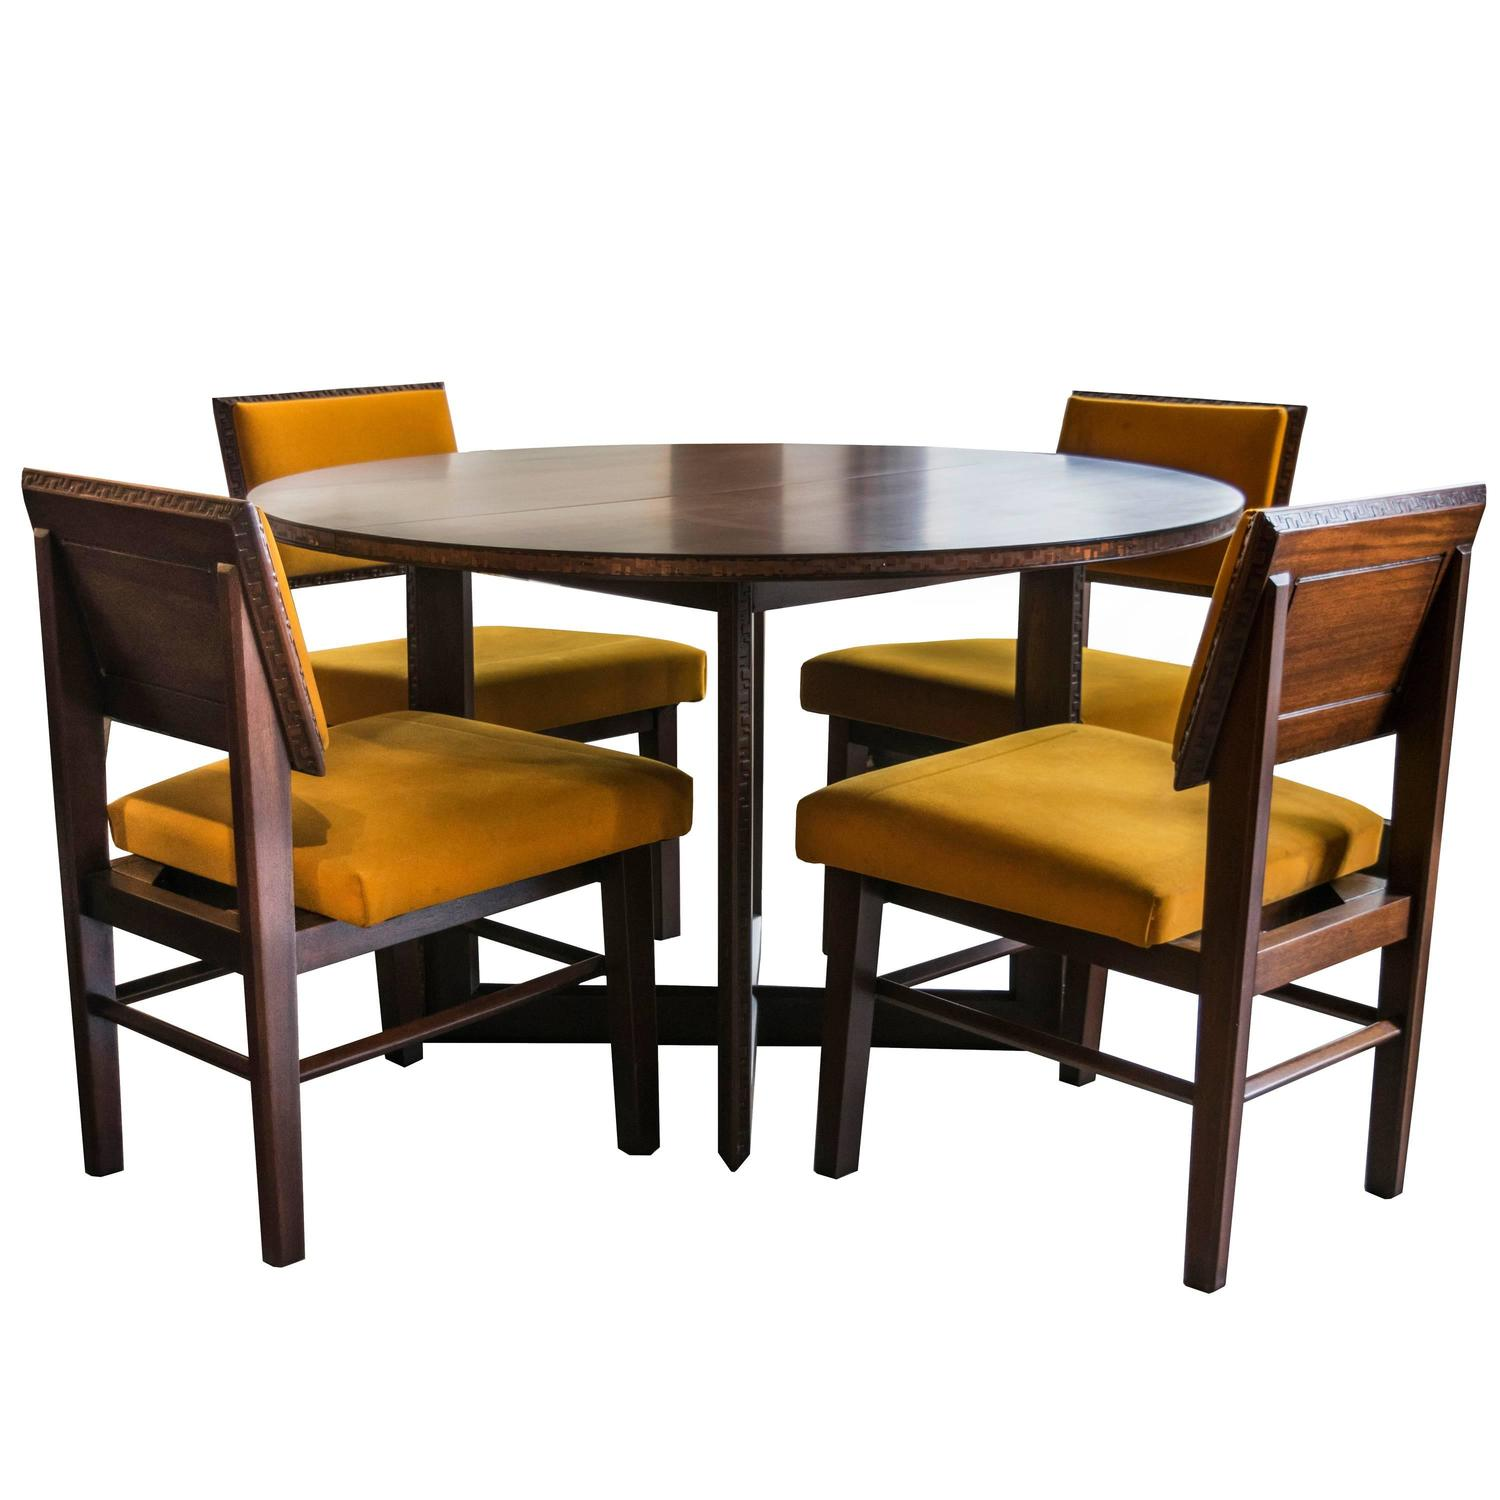 Frank Lloyd Wright For Henredon Dining Table With Chairs At Stdibs - Alyssa dining room set